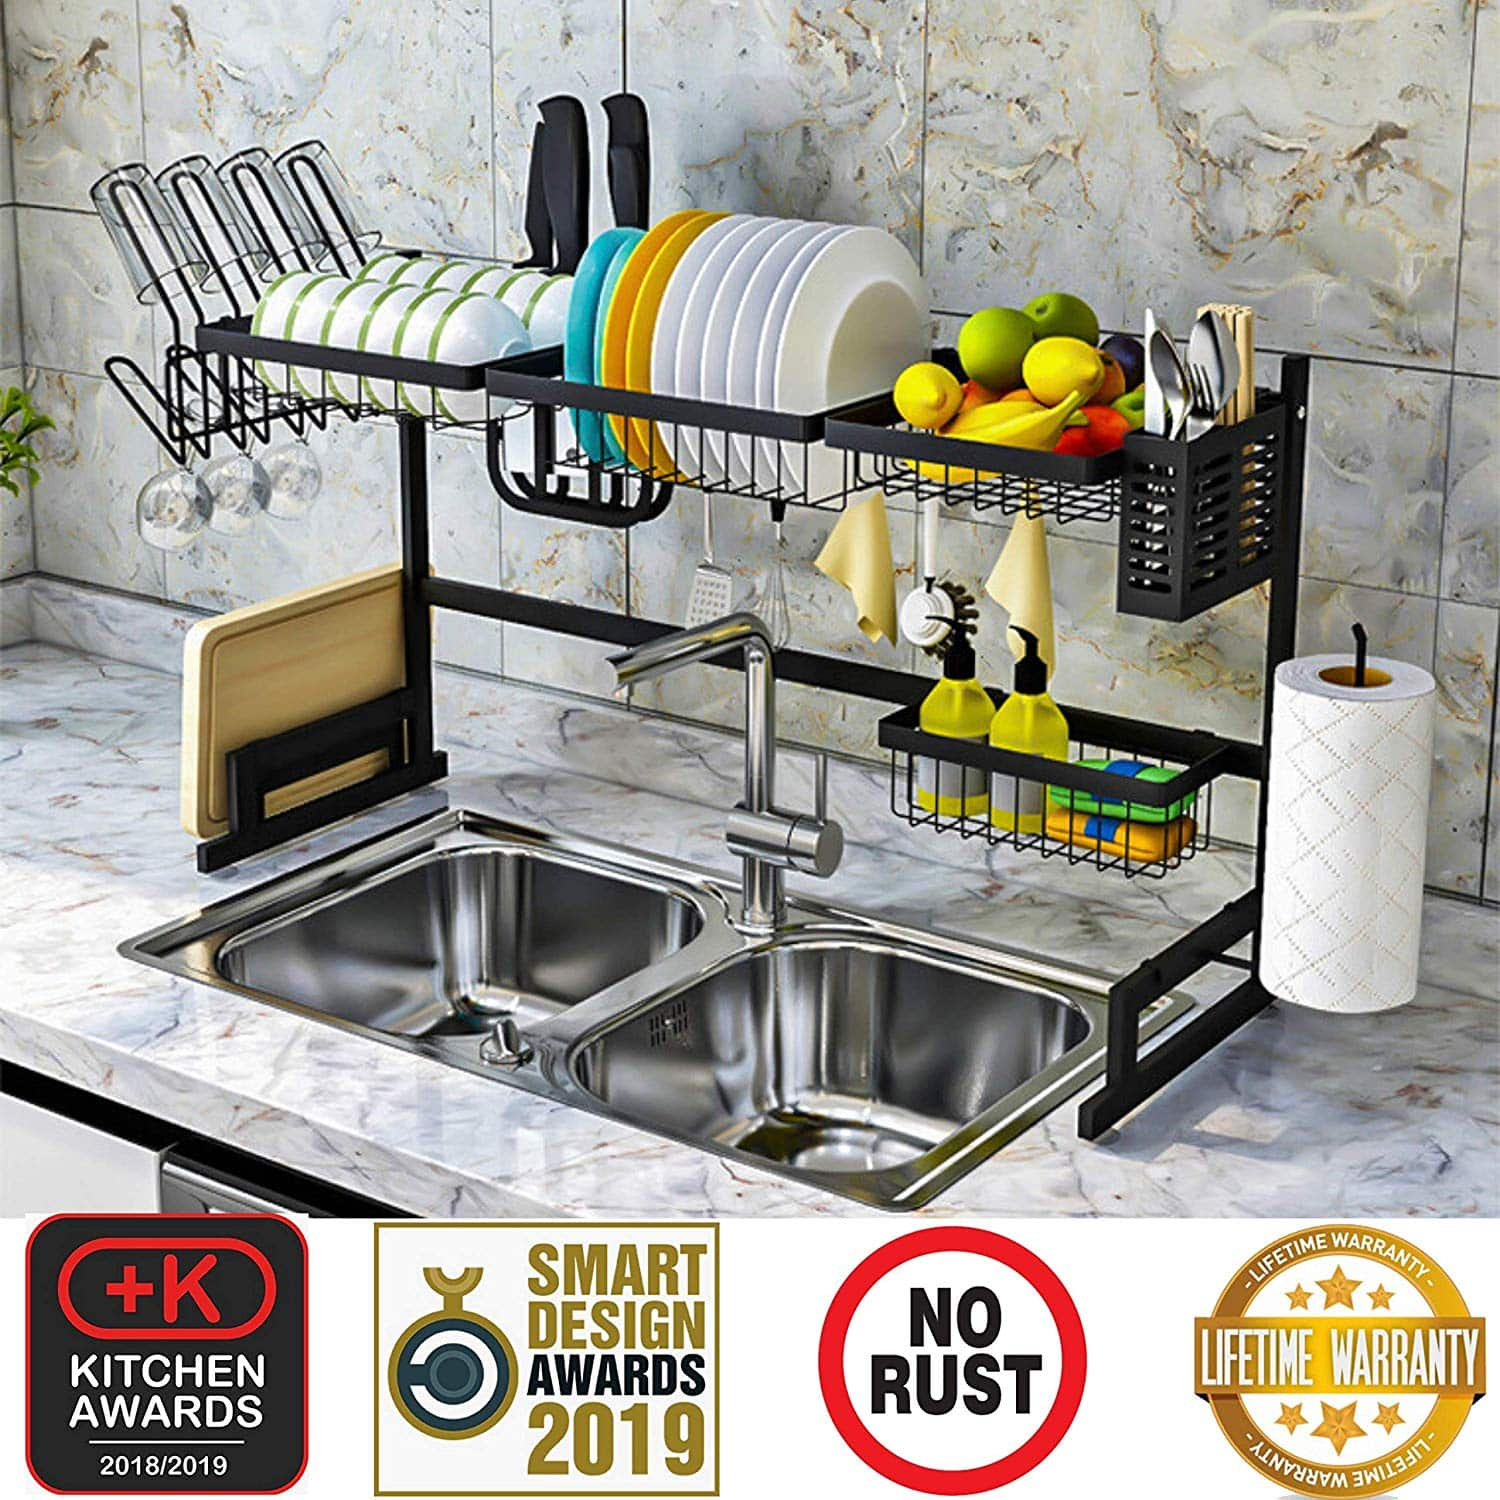 Topkitch Dish Drying Rack